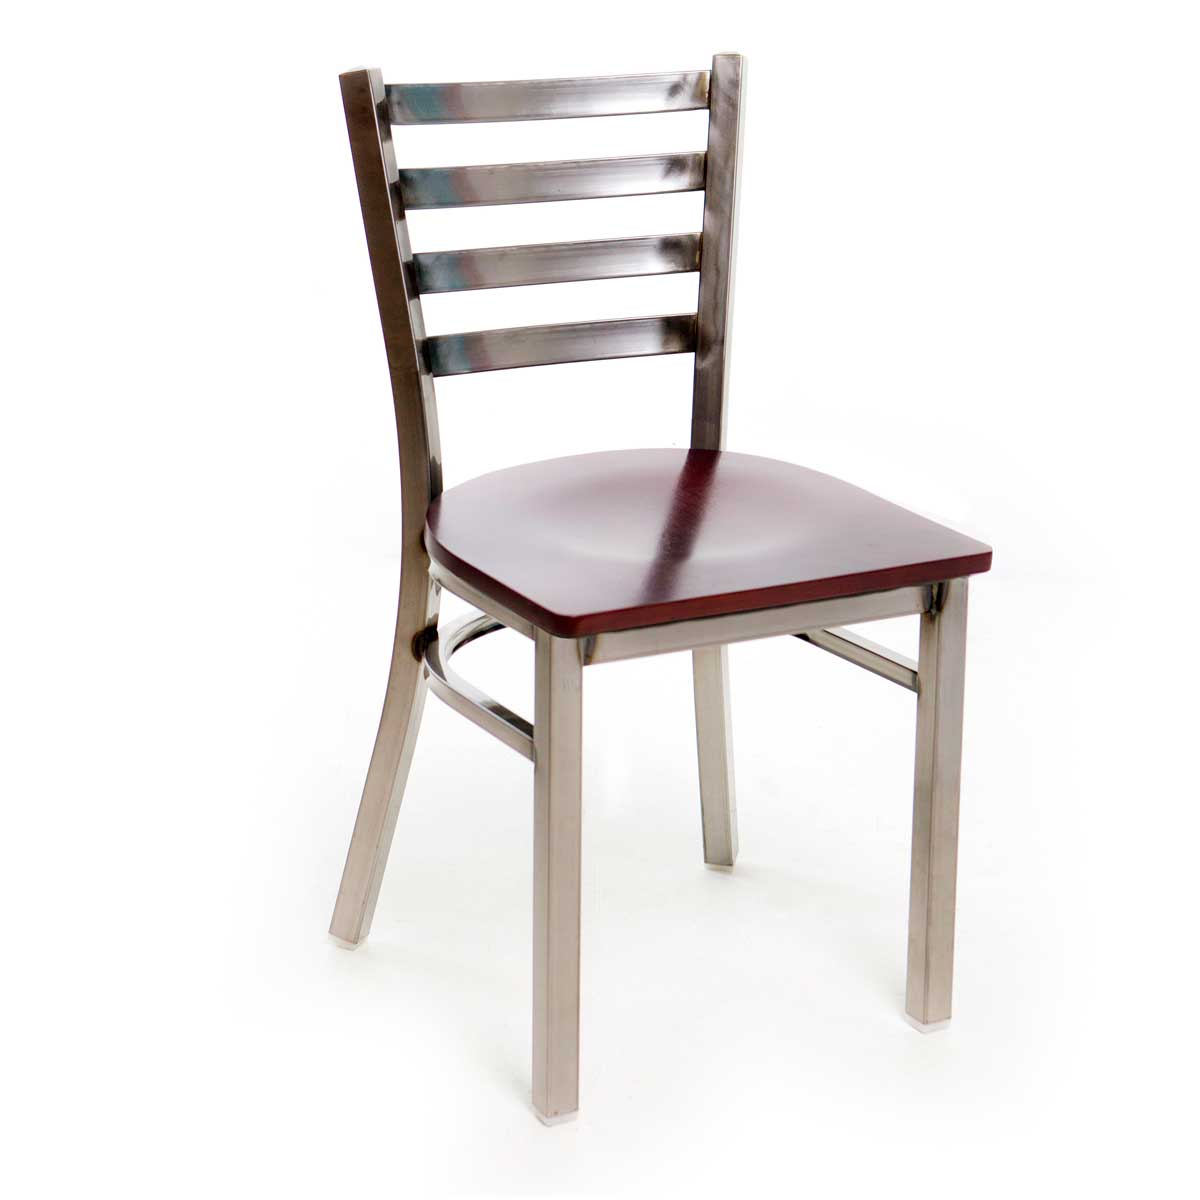 Metal Ladder Back Chair - Clear Coat